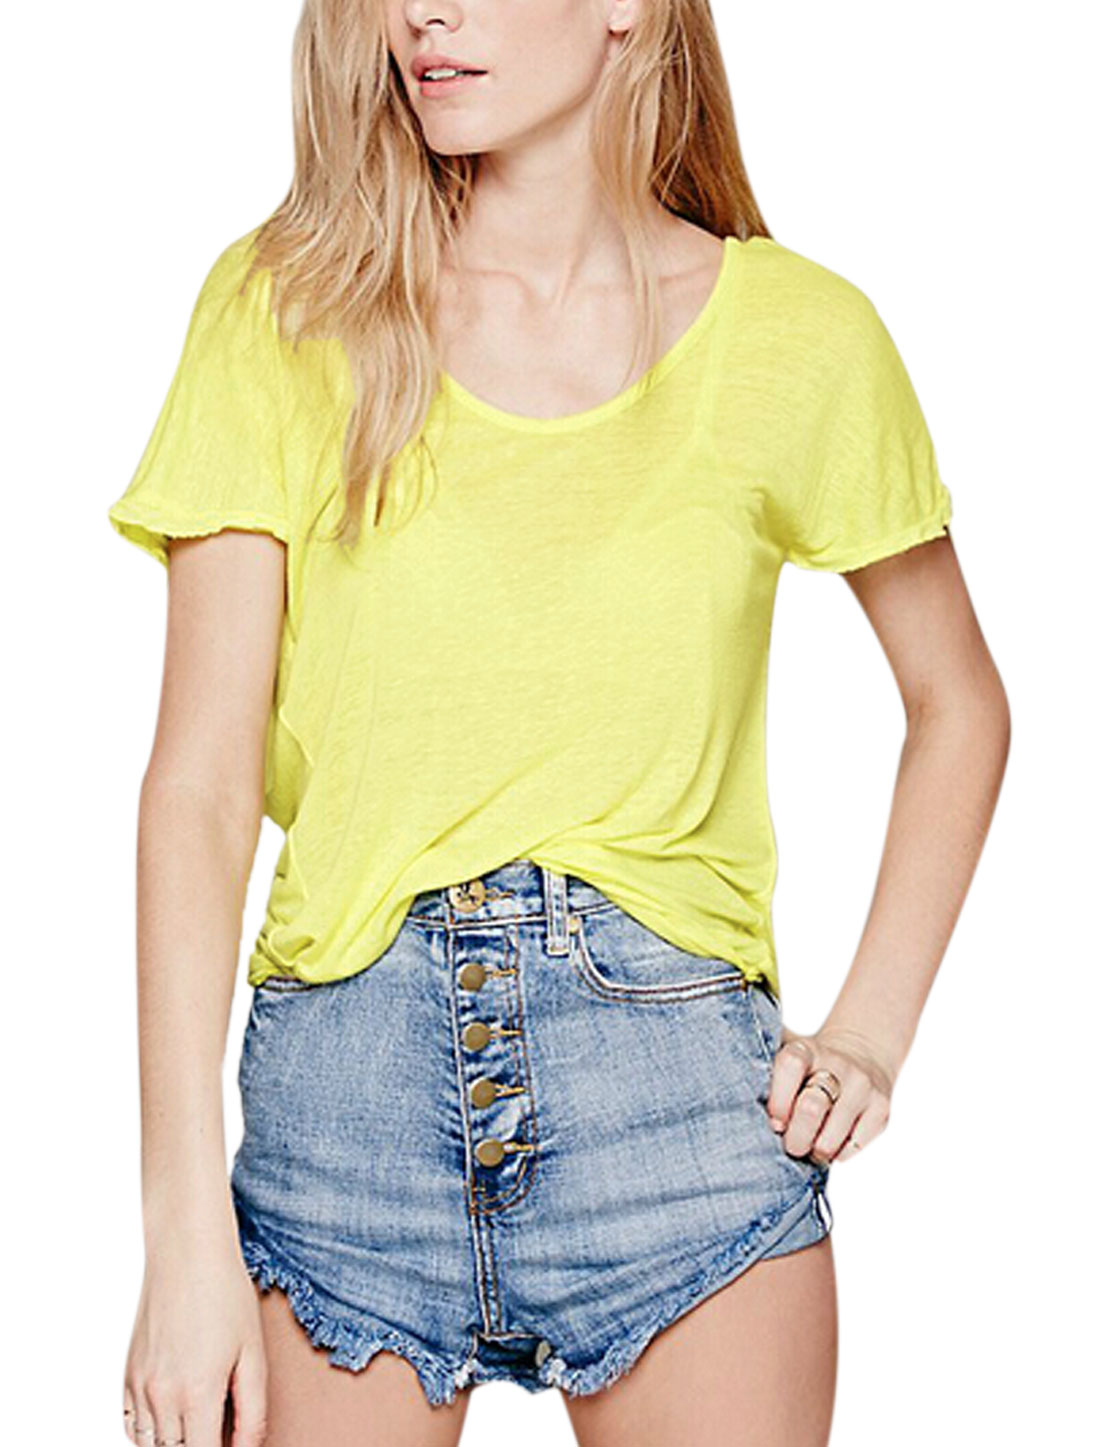 Ladies Short Sleeves Strap Knot Back Casual Shirts Yellow XS